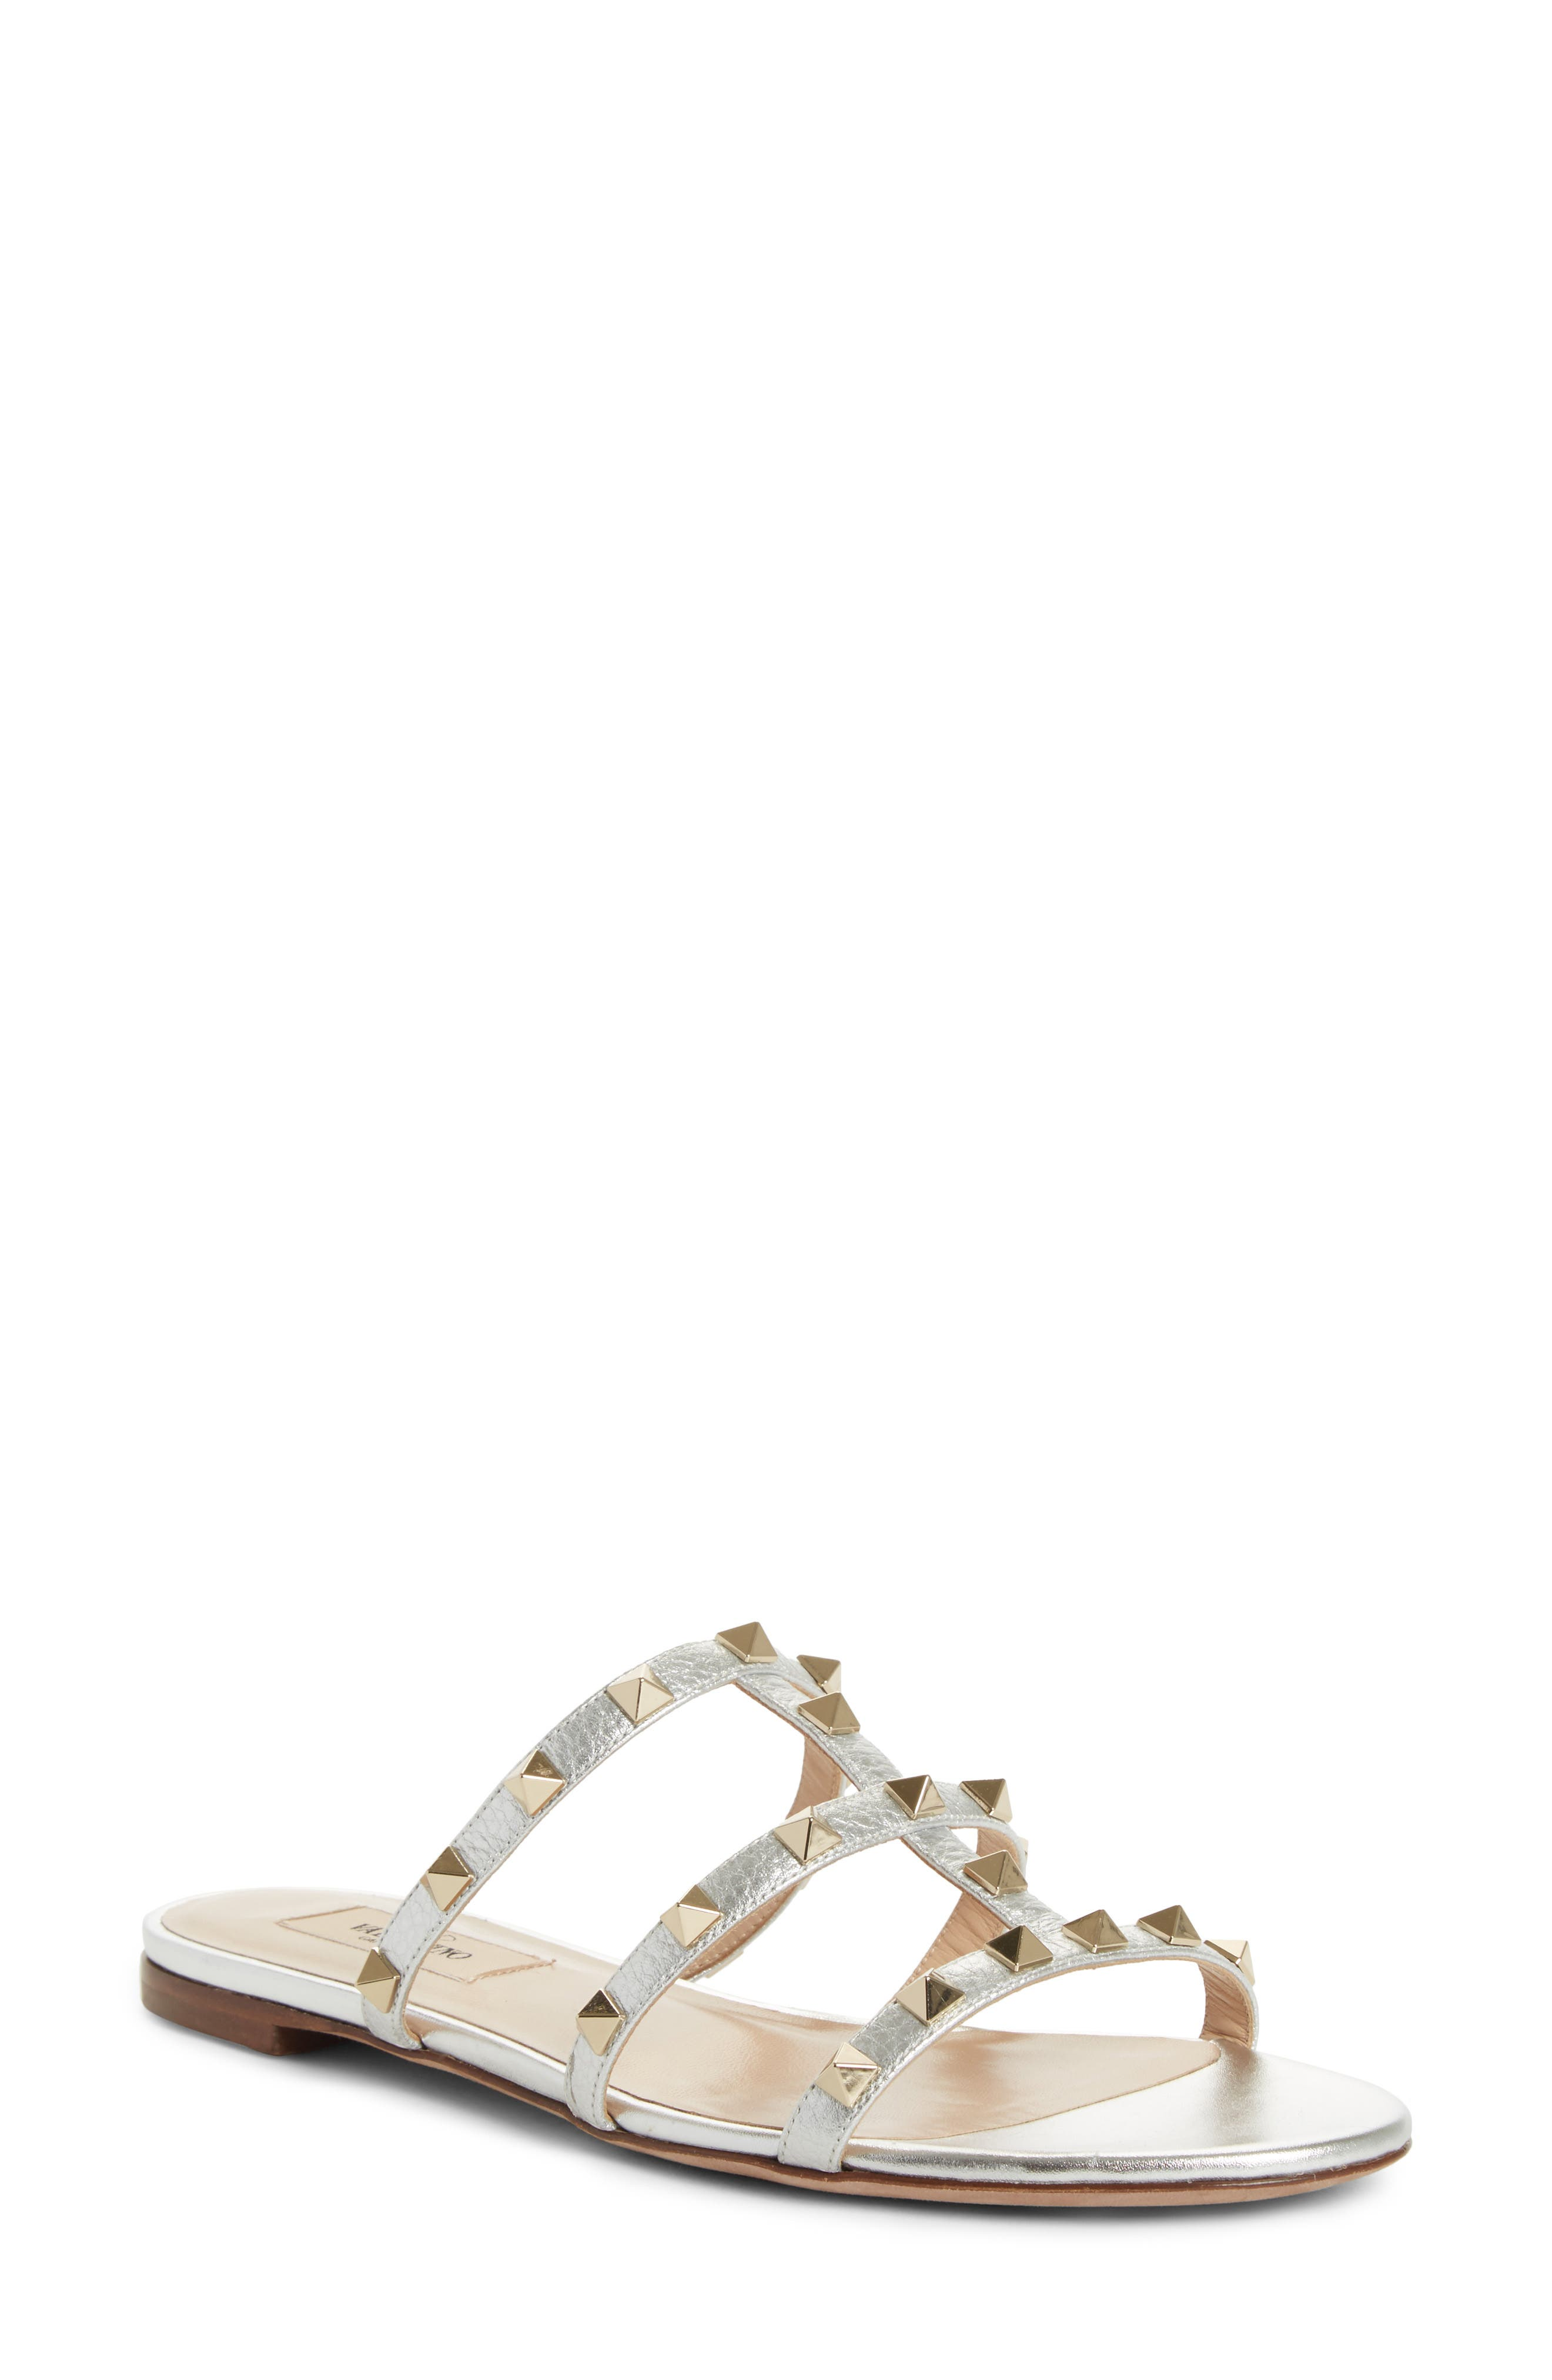 Rockstud Cage Slide Sandal,                         Main,                         color, METALLIC SILVER